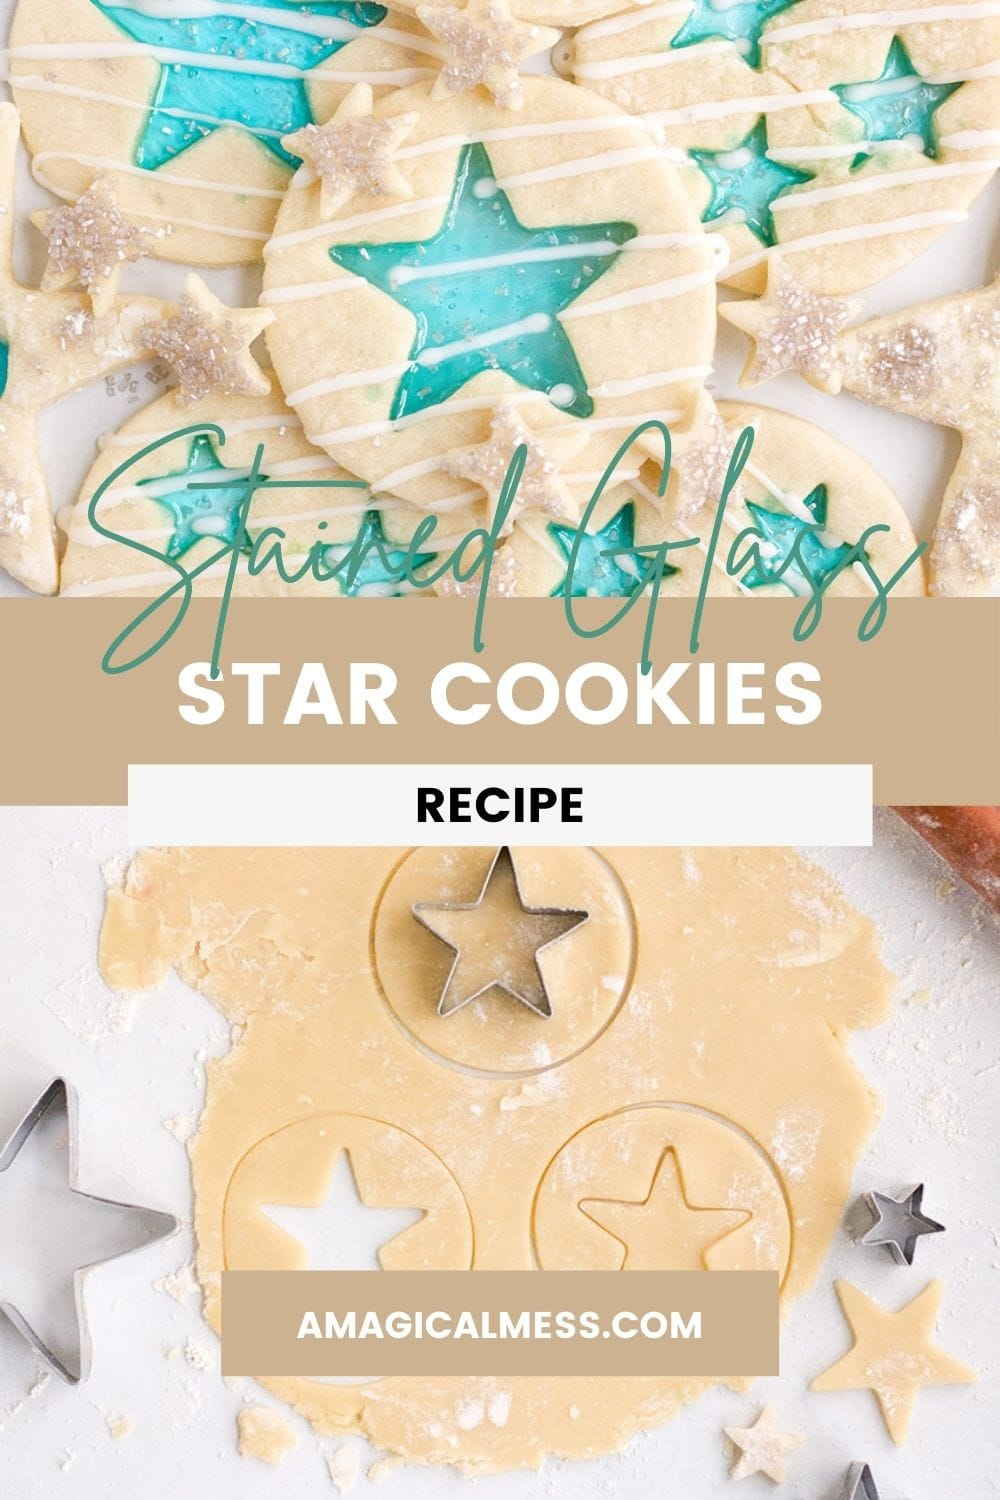 Cookie dough and baked stained-glass cookies with stars